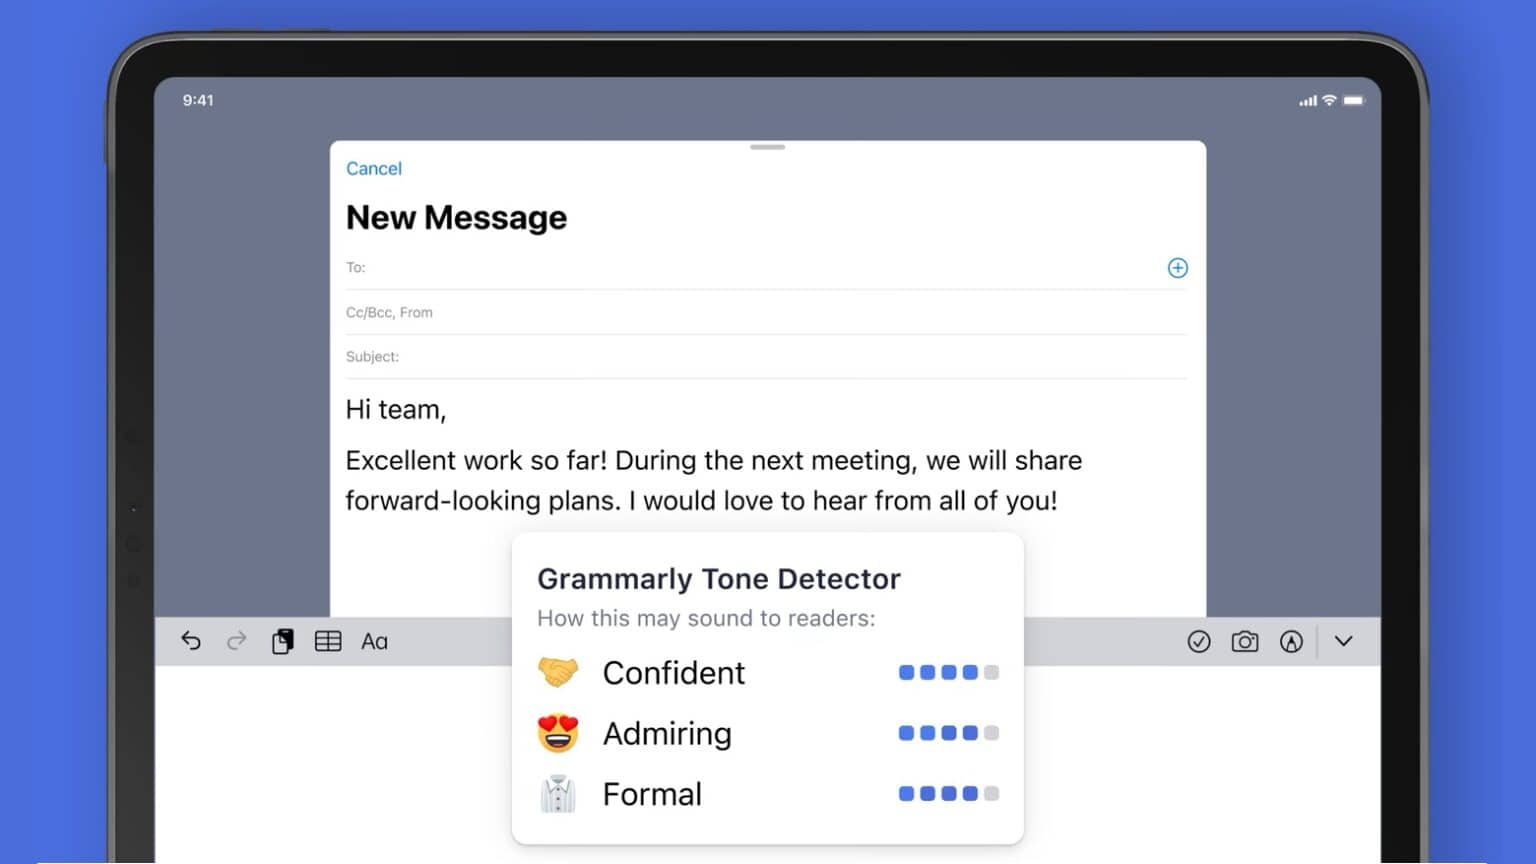 Grammarly tone detector is now available for iPhone or iPad